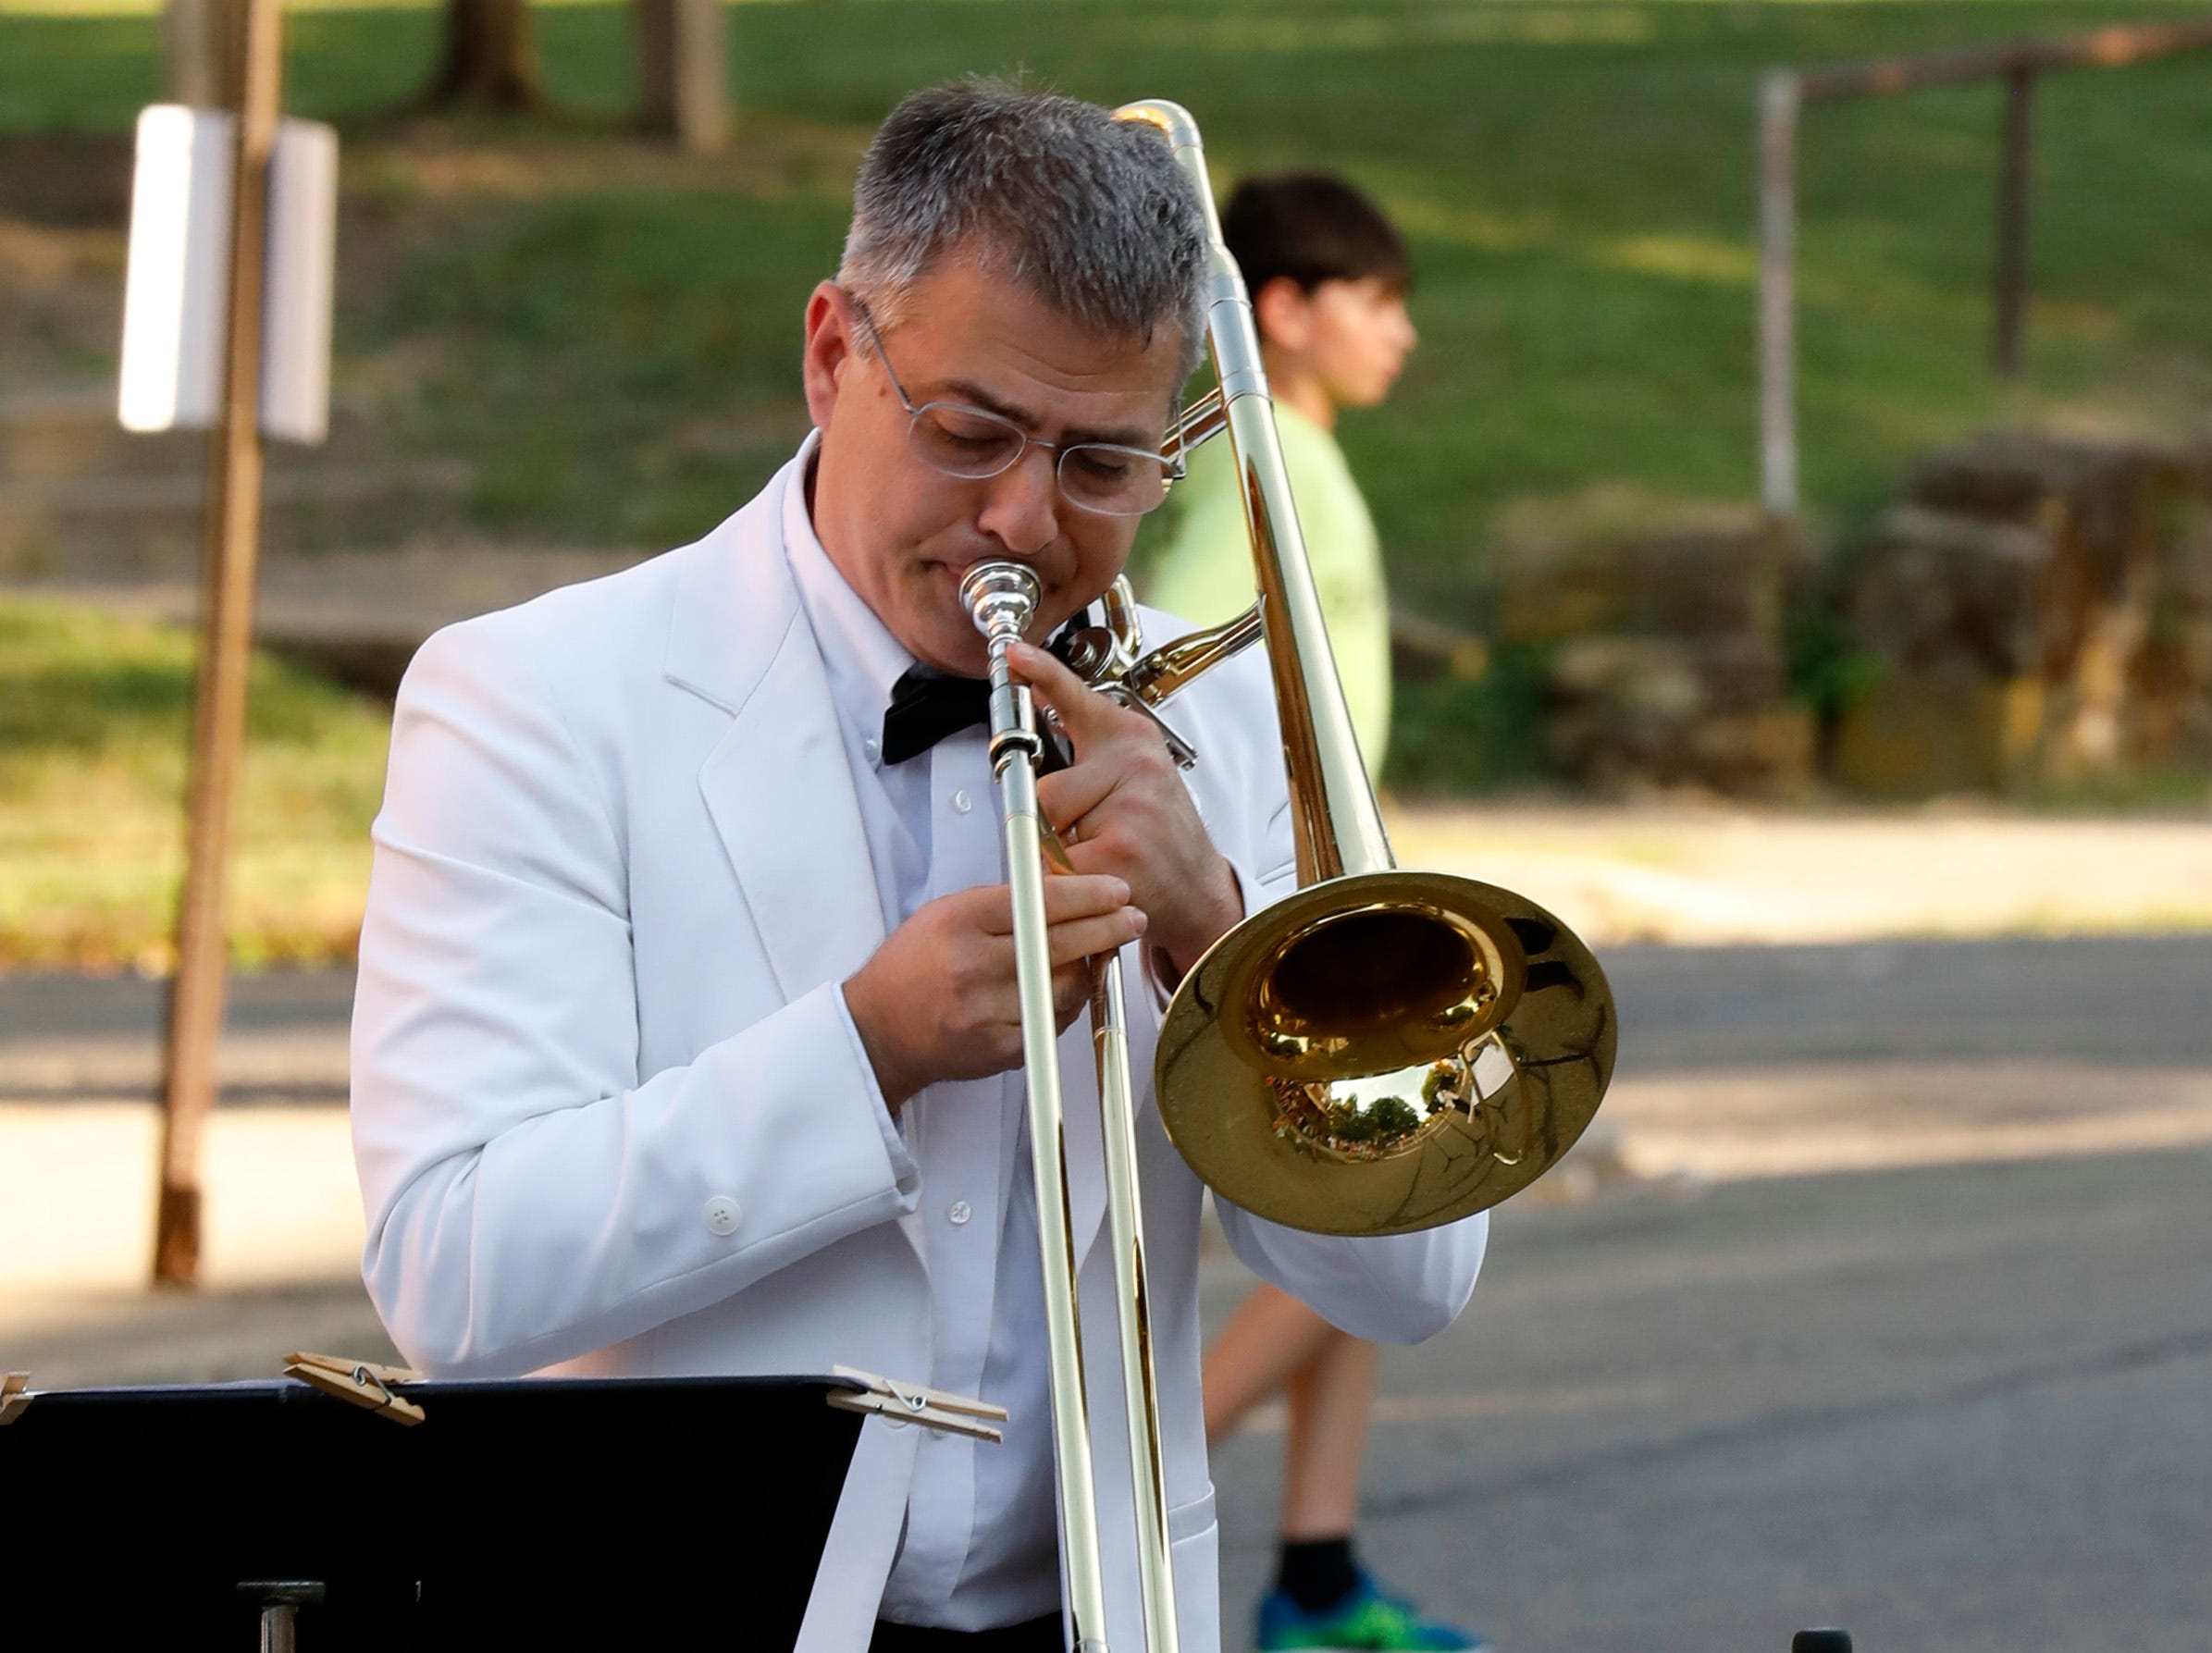 Memebers of the Lancaster Festival Orchestra low brass quartet performed a brass fanfare before the opening night concert Thursday evening, July 19, 2018, in front of St. Mary of the Assumption Roman Catholic Church in downtown Lancaster.